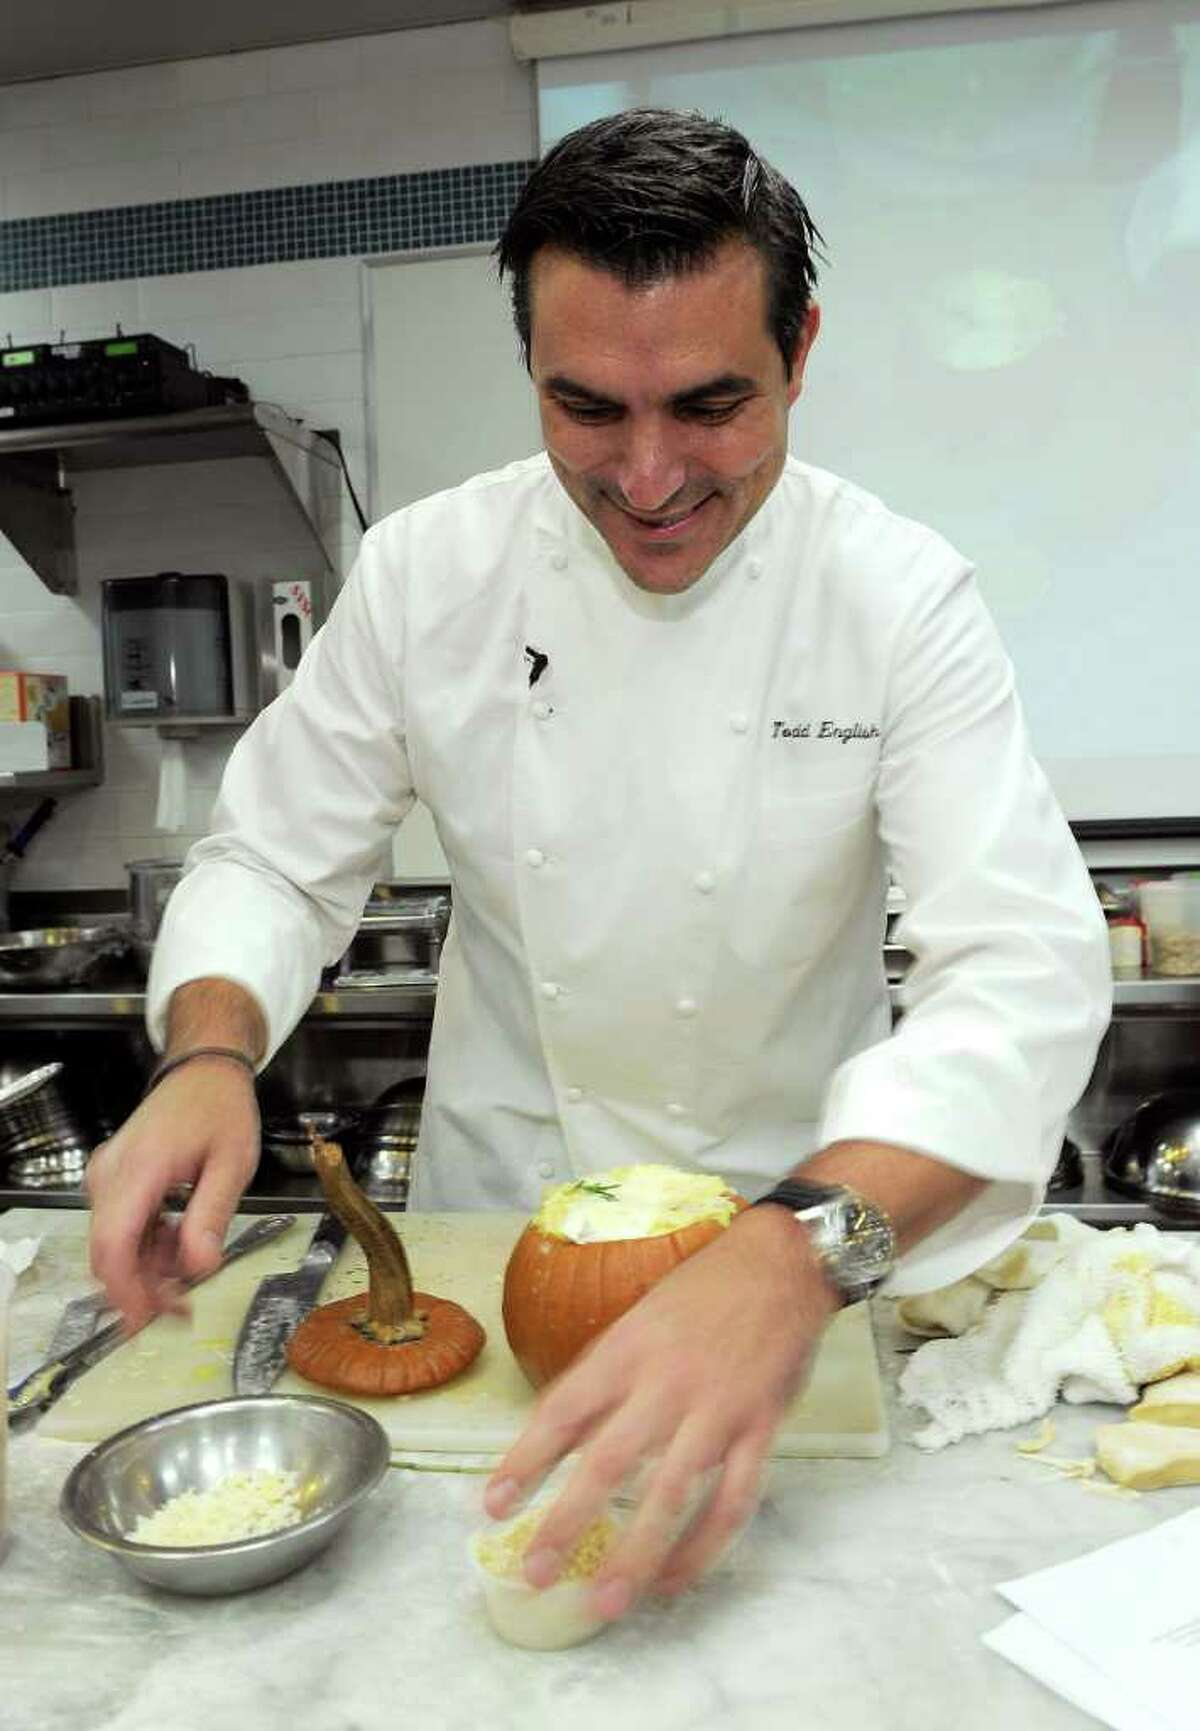 Chef Todd English teaches a class during the New York Culinary Experience hosted by New York magazine and The French Culinary Institute at The French Culinary Institute on October 3, 2010 in New York City. (Photo by Larry Busacca/Getty Images for New York magazine)